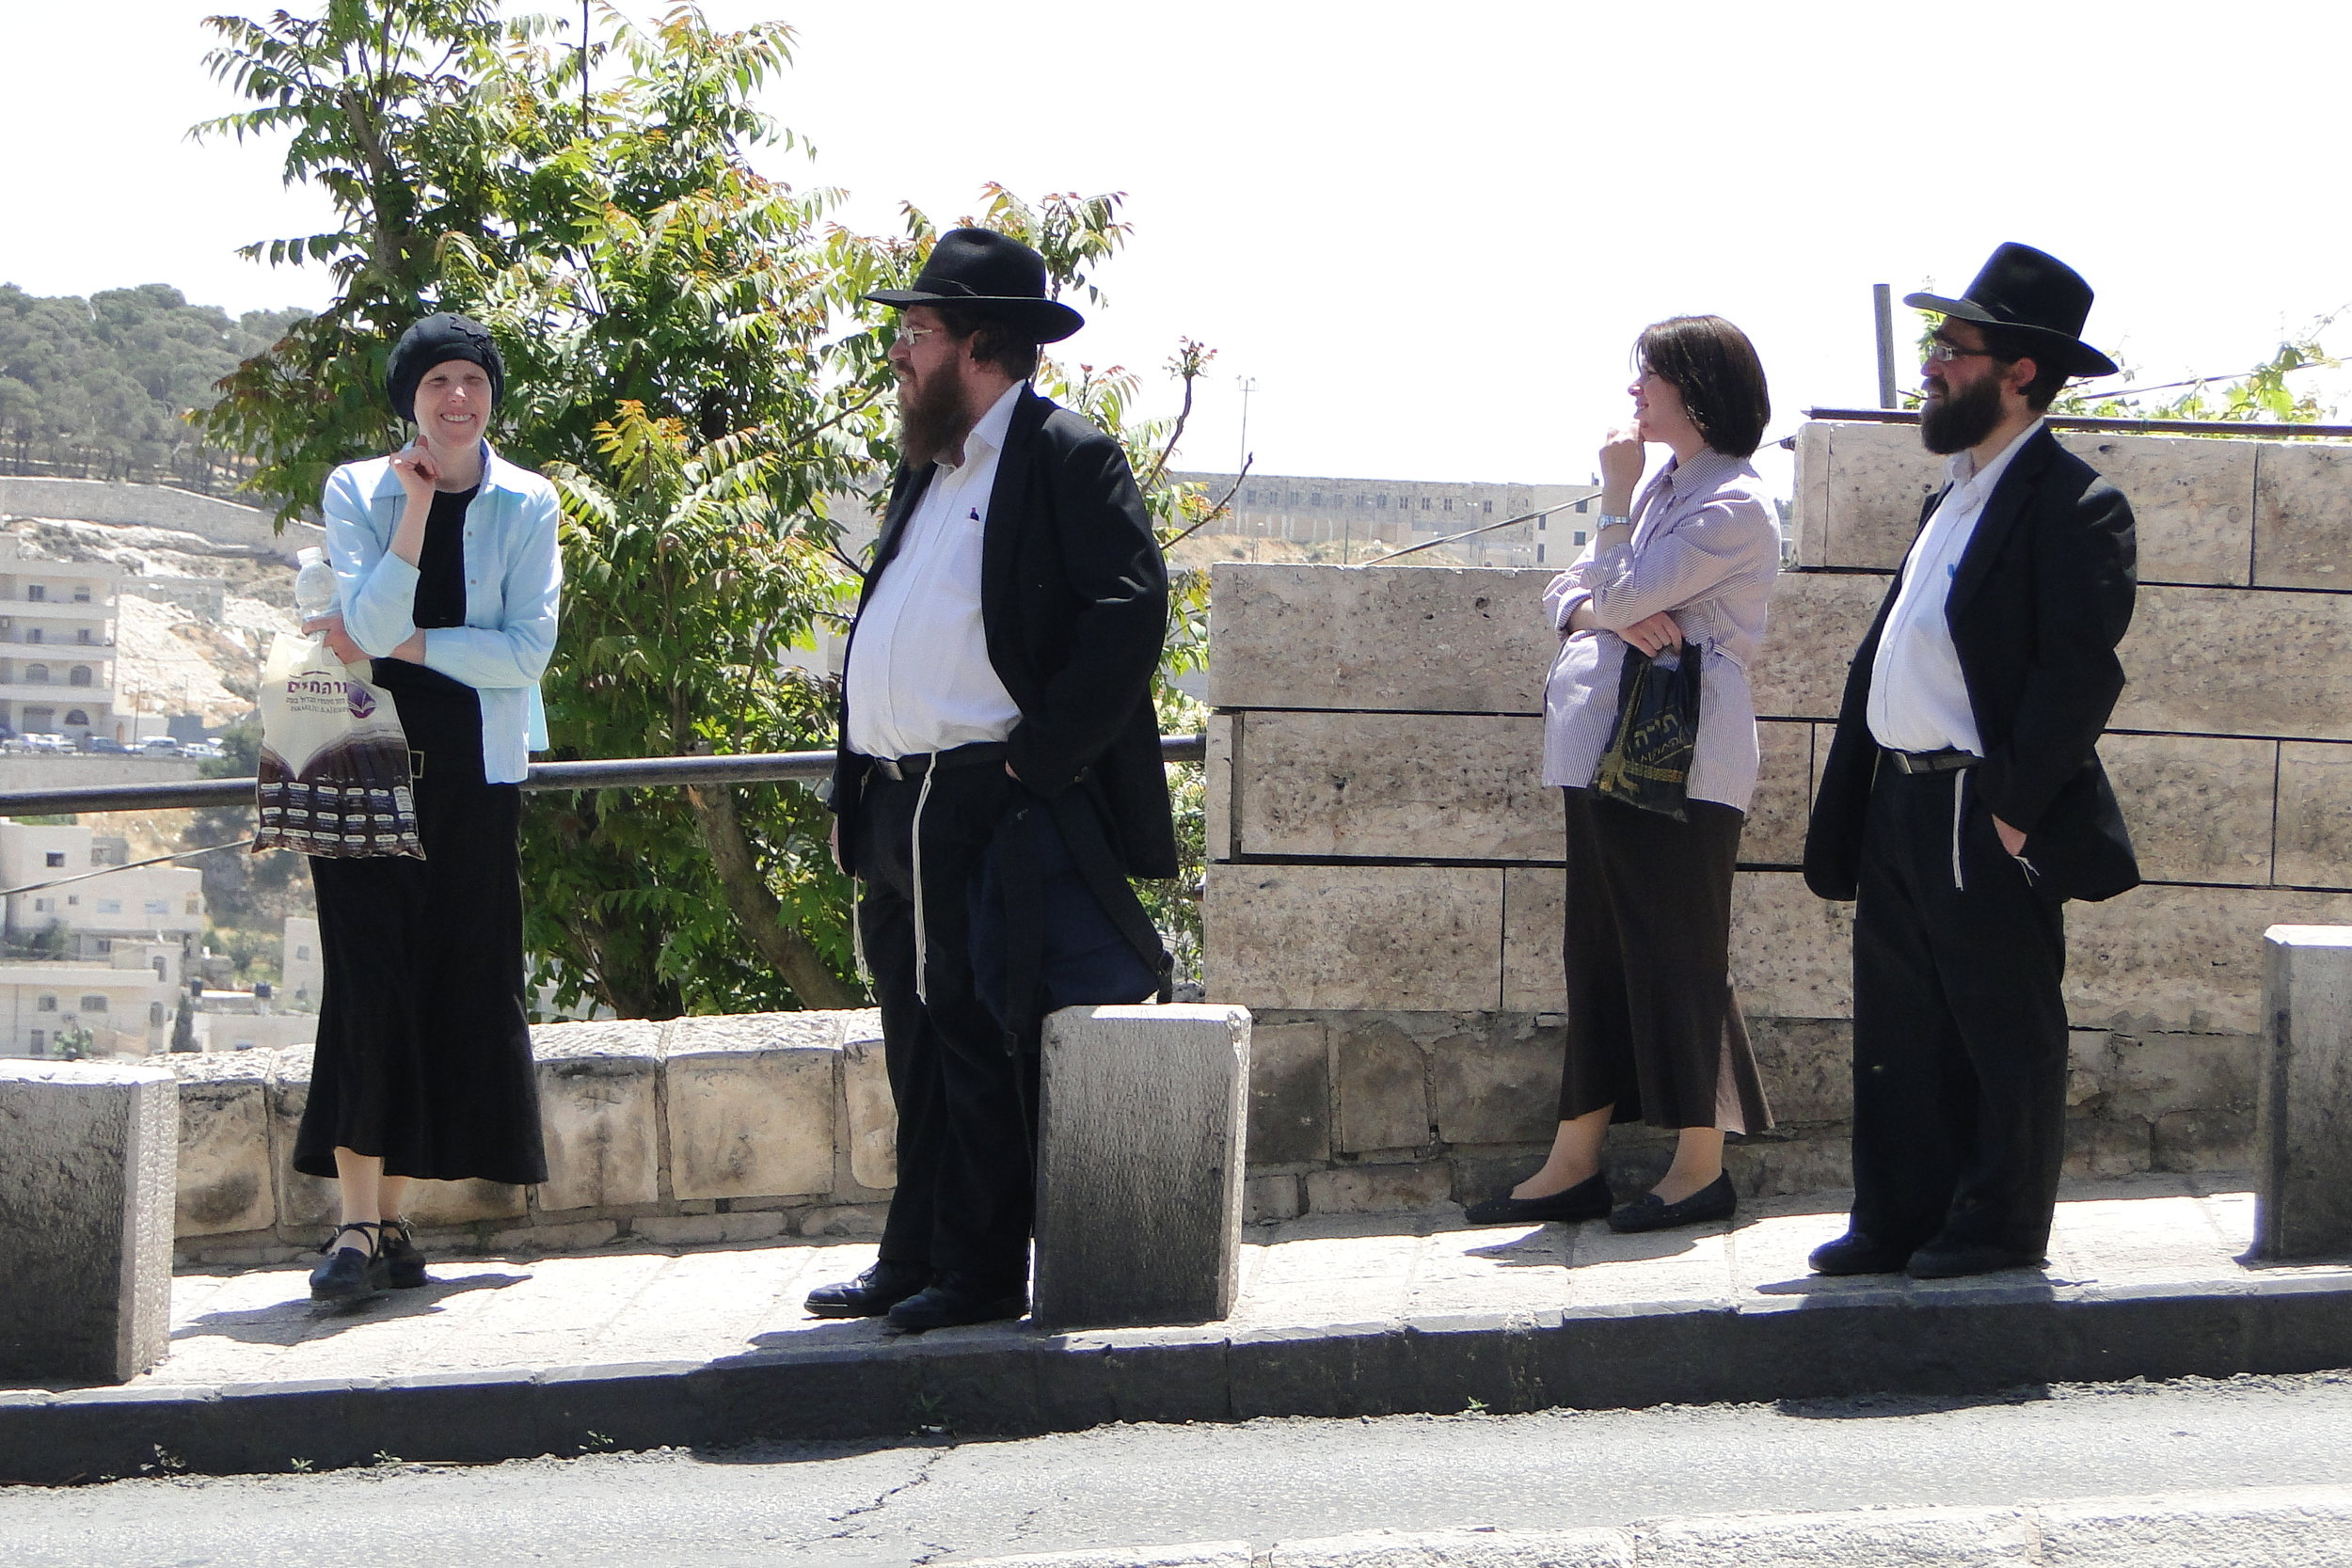 Haredi_(Orthodox)_Jewish_Couples_at_Bus_Stop_-_Outside_Old_City_-_Jerusalem_-_Israel_(5684561290).jpg